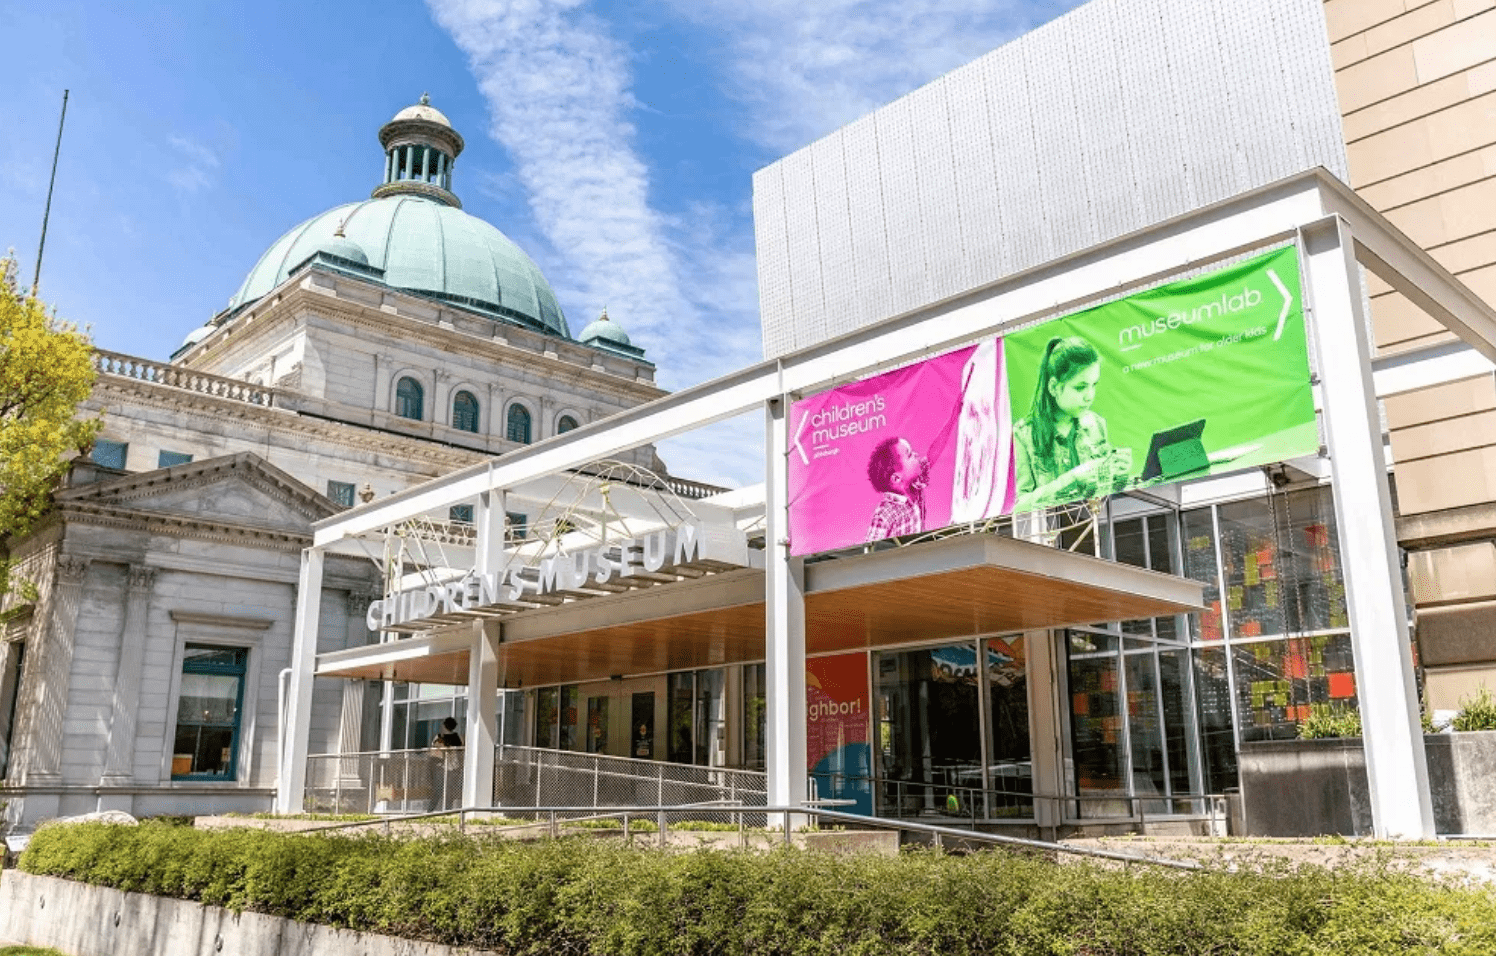 9 things you need to know about the reopening of the Children's Museum